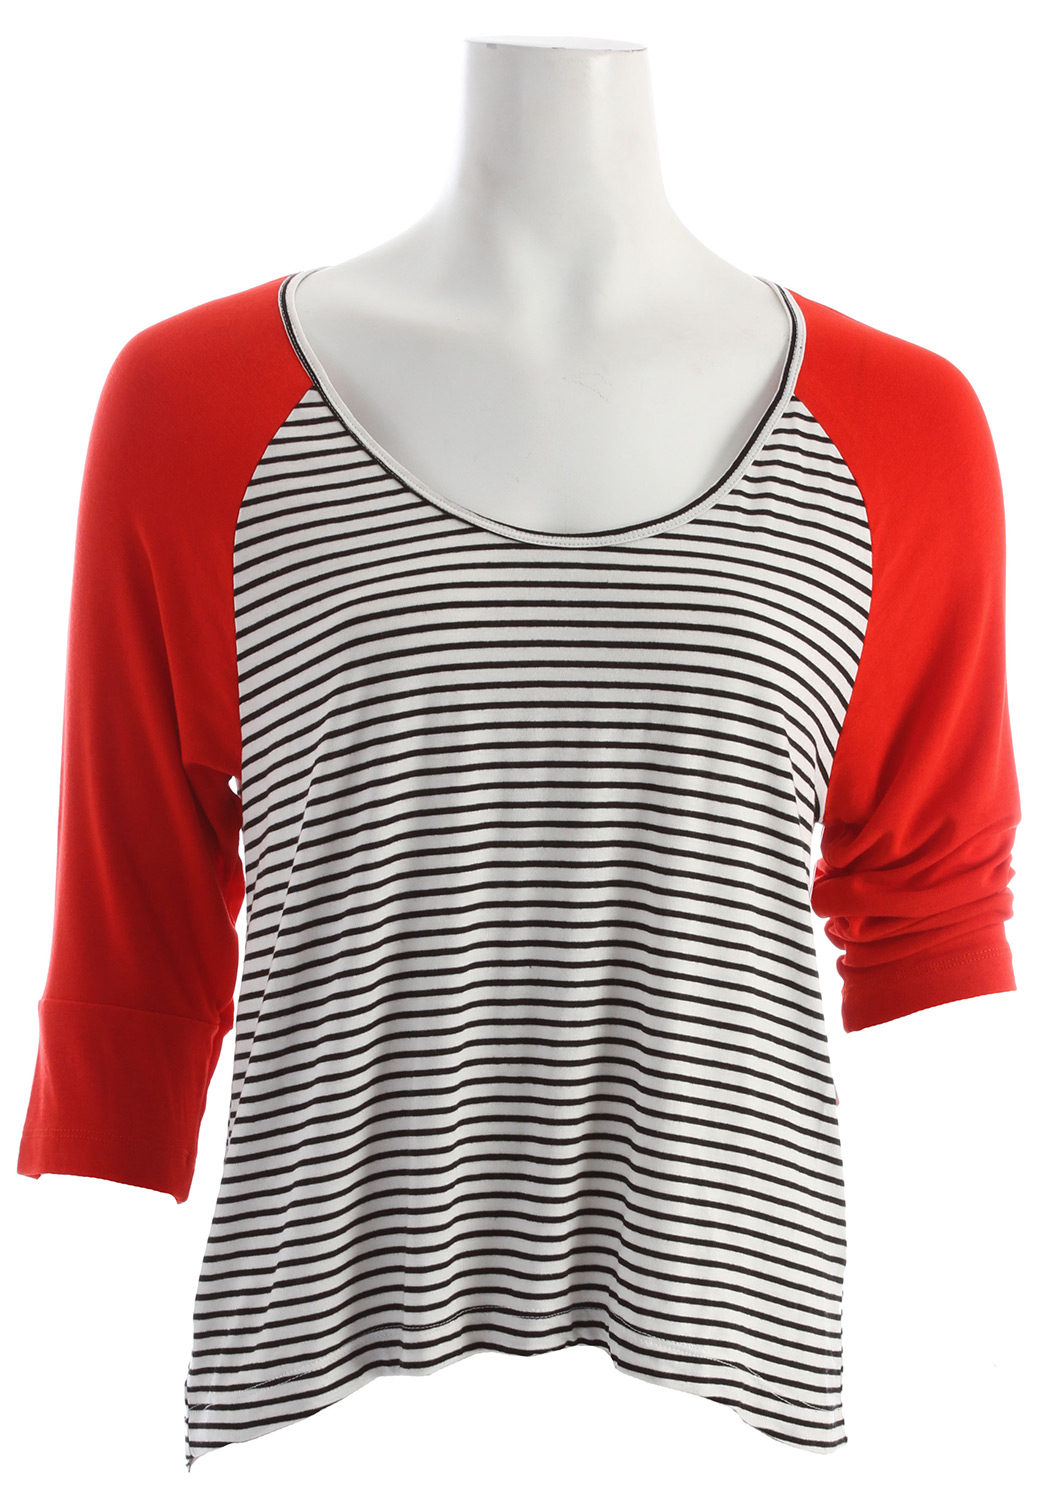 Surf Roxy Sea Love Shirt Fiery Red - $21.95